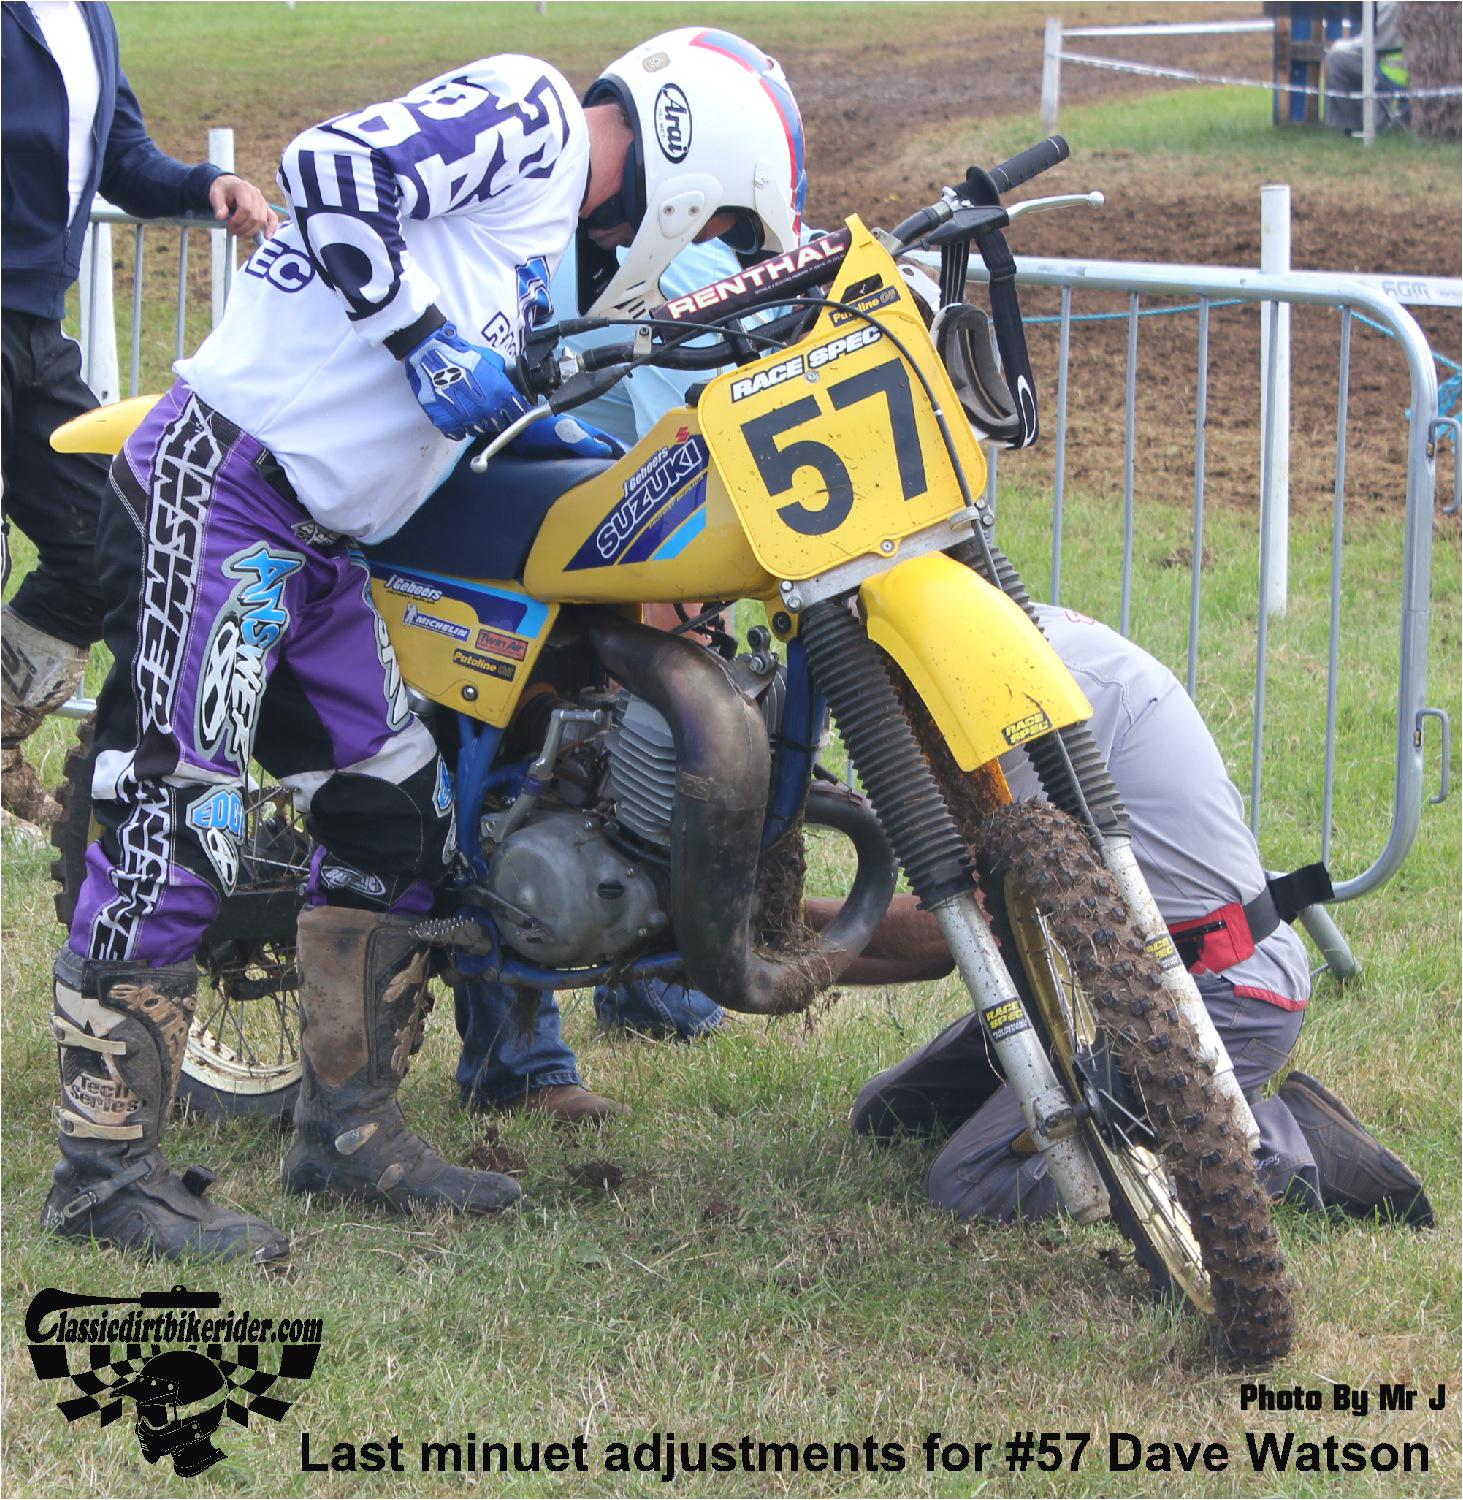 king of the castle 2015 photos Farleigh Castle twinshock motocross classicdirtbikerider.com 18 DAVE WATSON